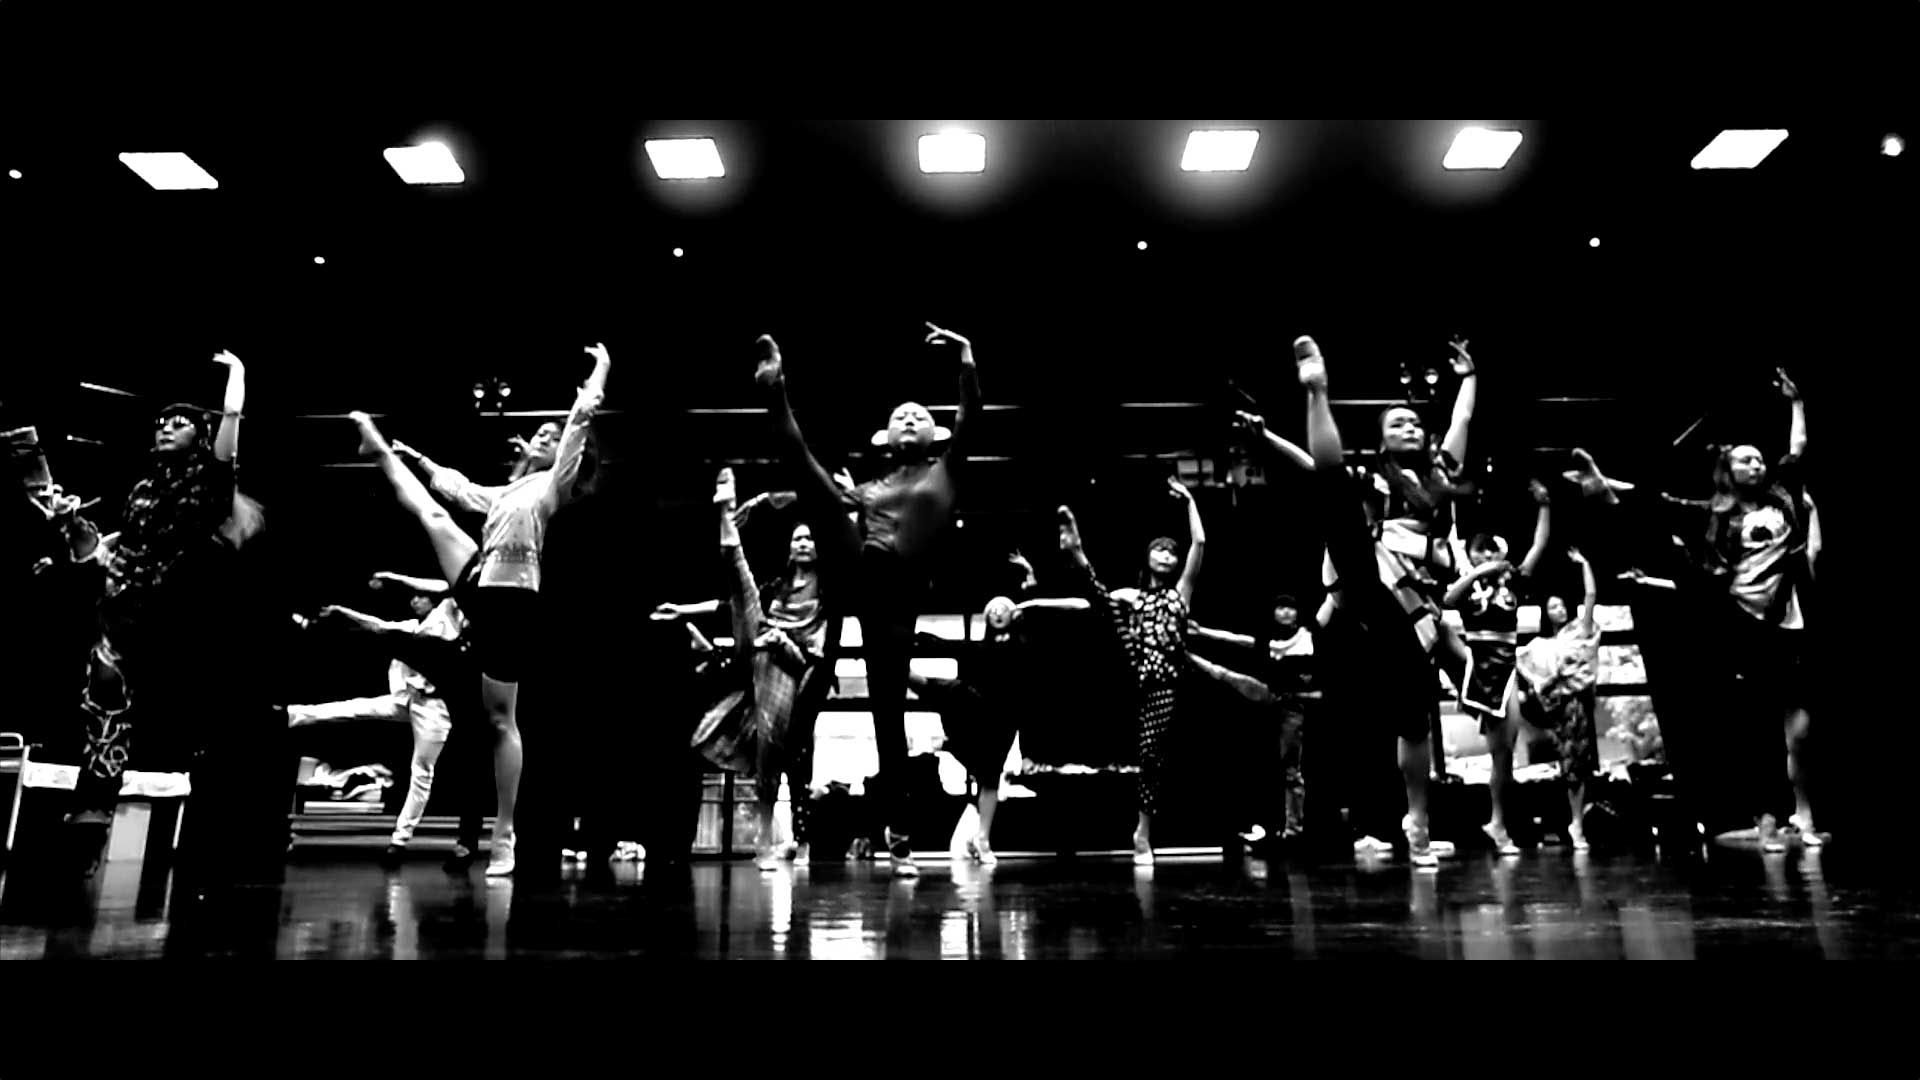 EyeNumber【2017 DANCE WORKS 公演『MUSUBI』】Trailer